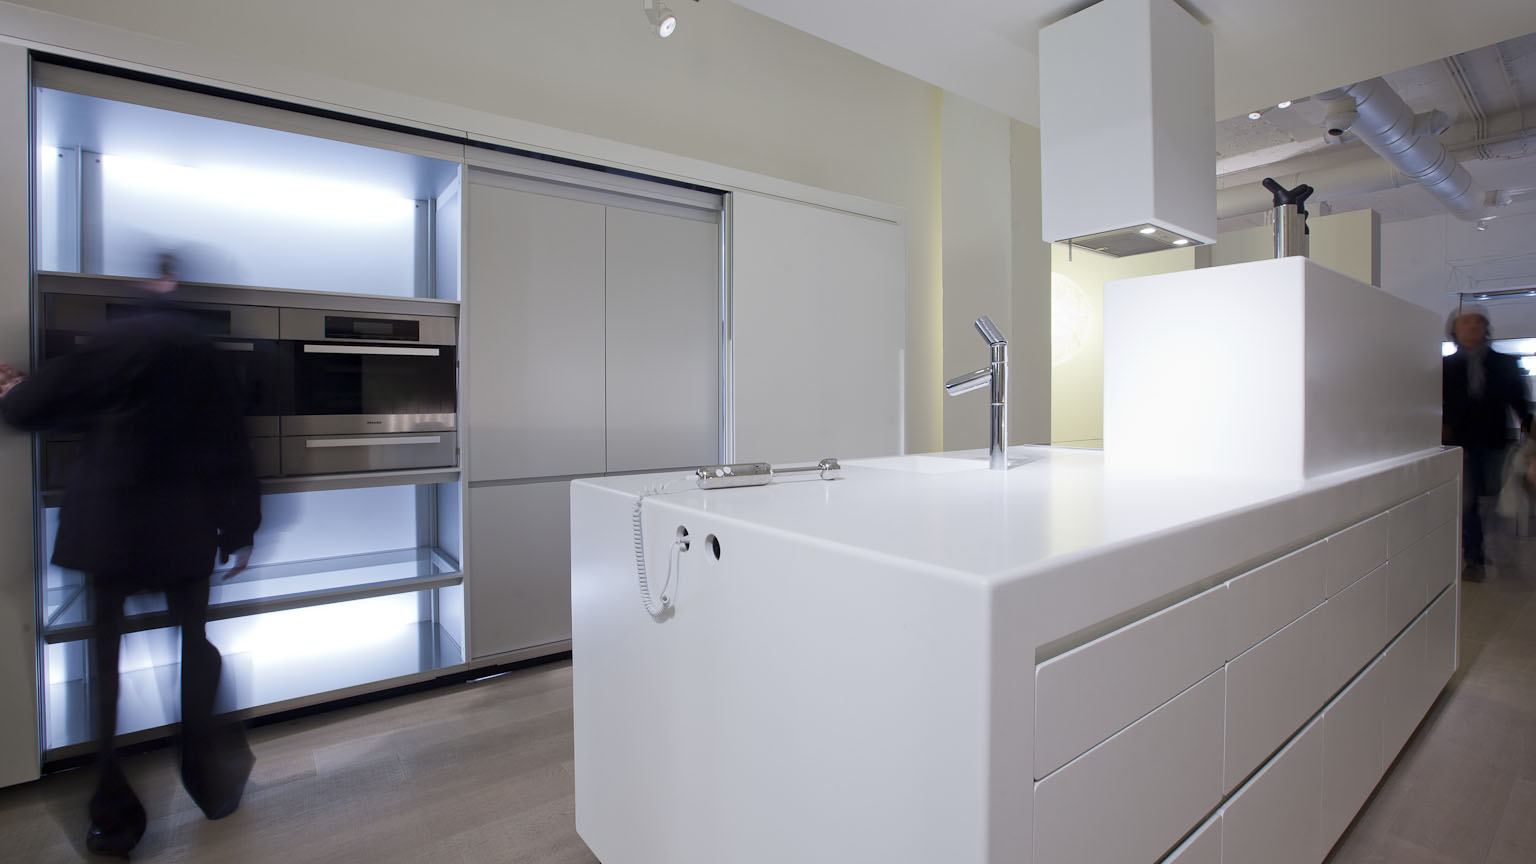 Val Cucine submited images.